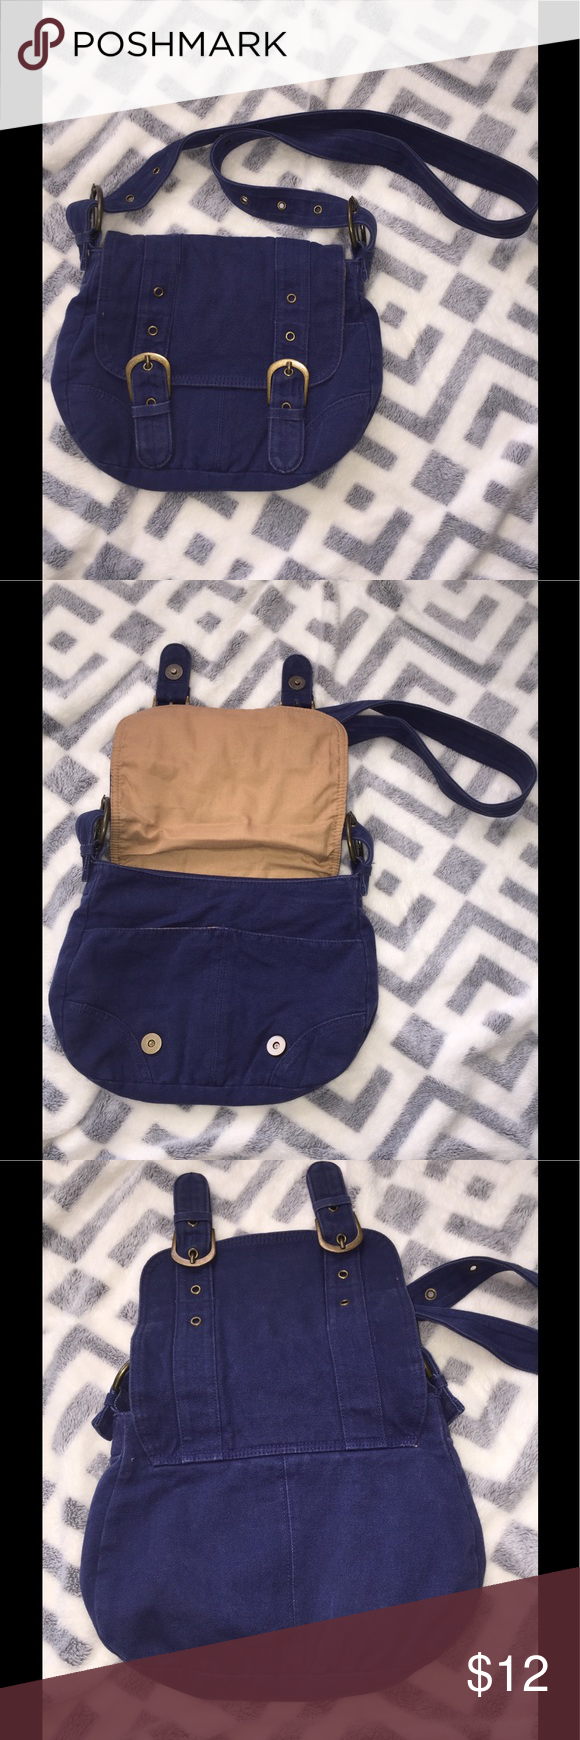 Blue purse Blue satchel purse with gold accents. Hardly used, in great condition! Bags Satchels